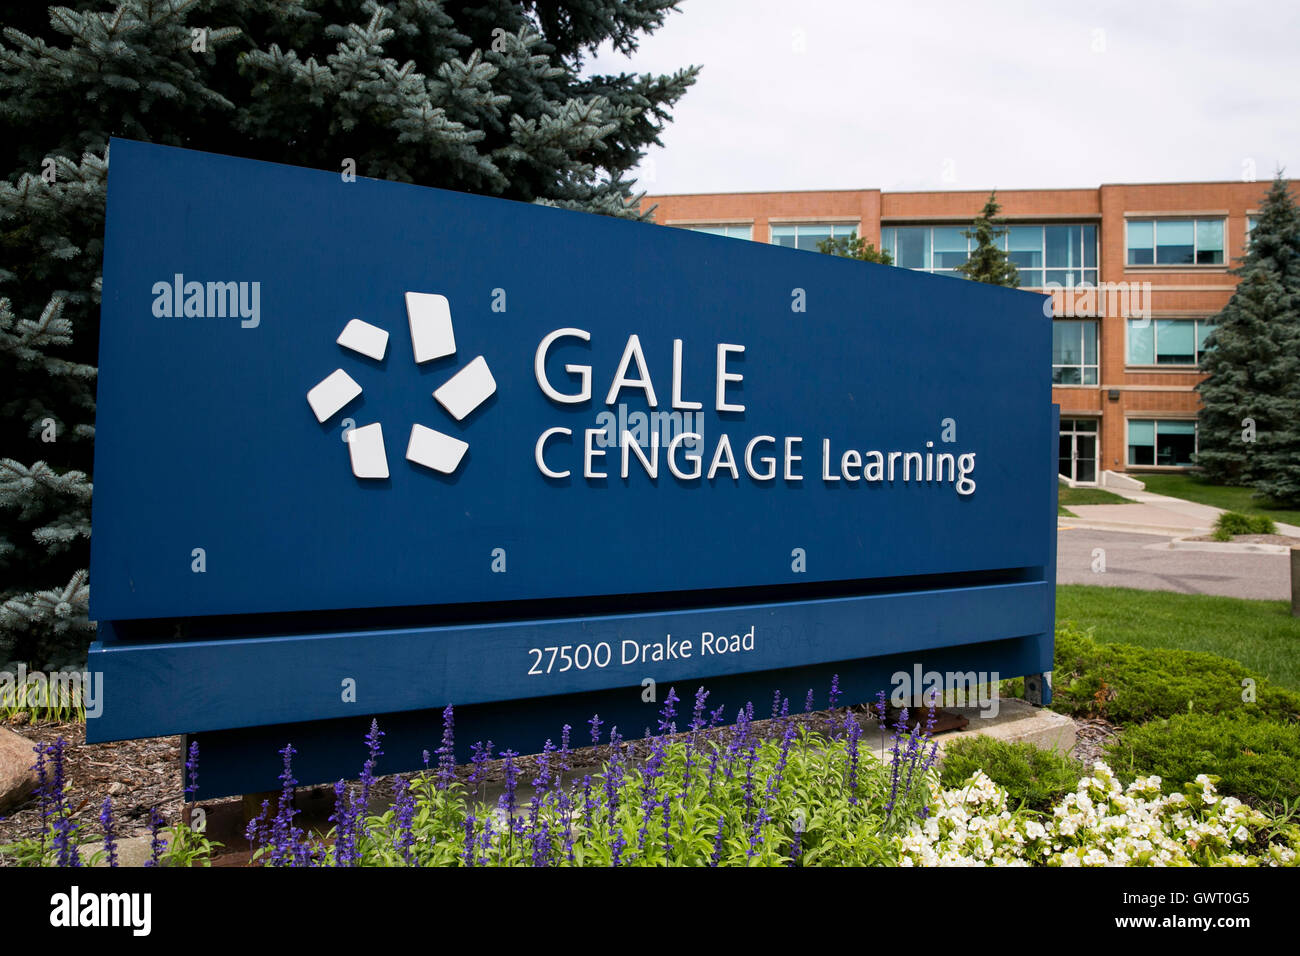 A logo sign outside of the headquarters of Gale, a subsidiary of Cengage Learning, in Farmington Hills, Michigan - Stock Image